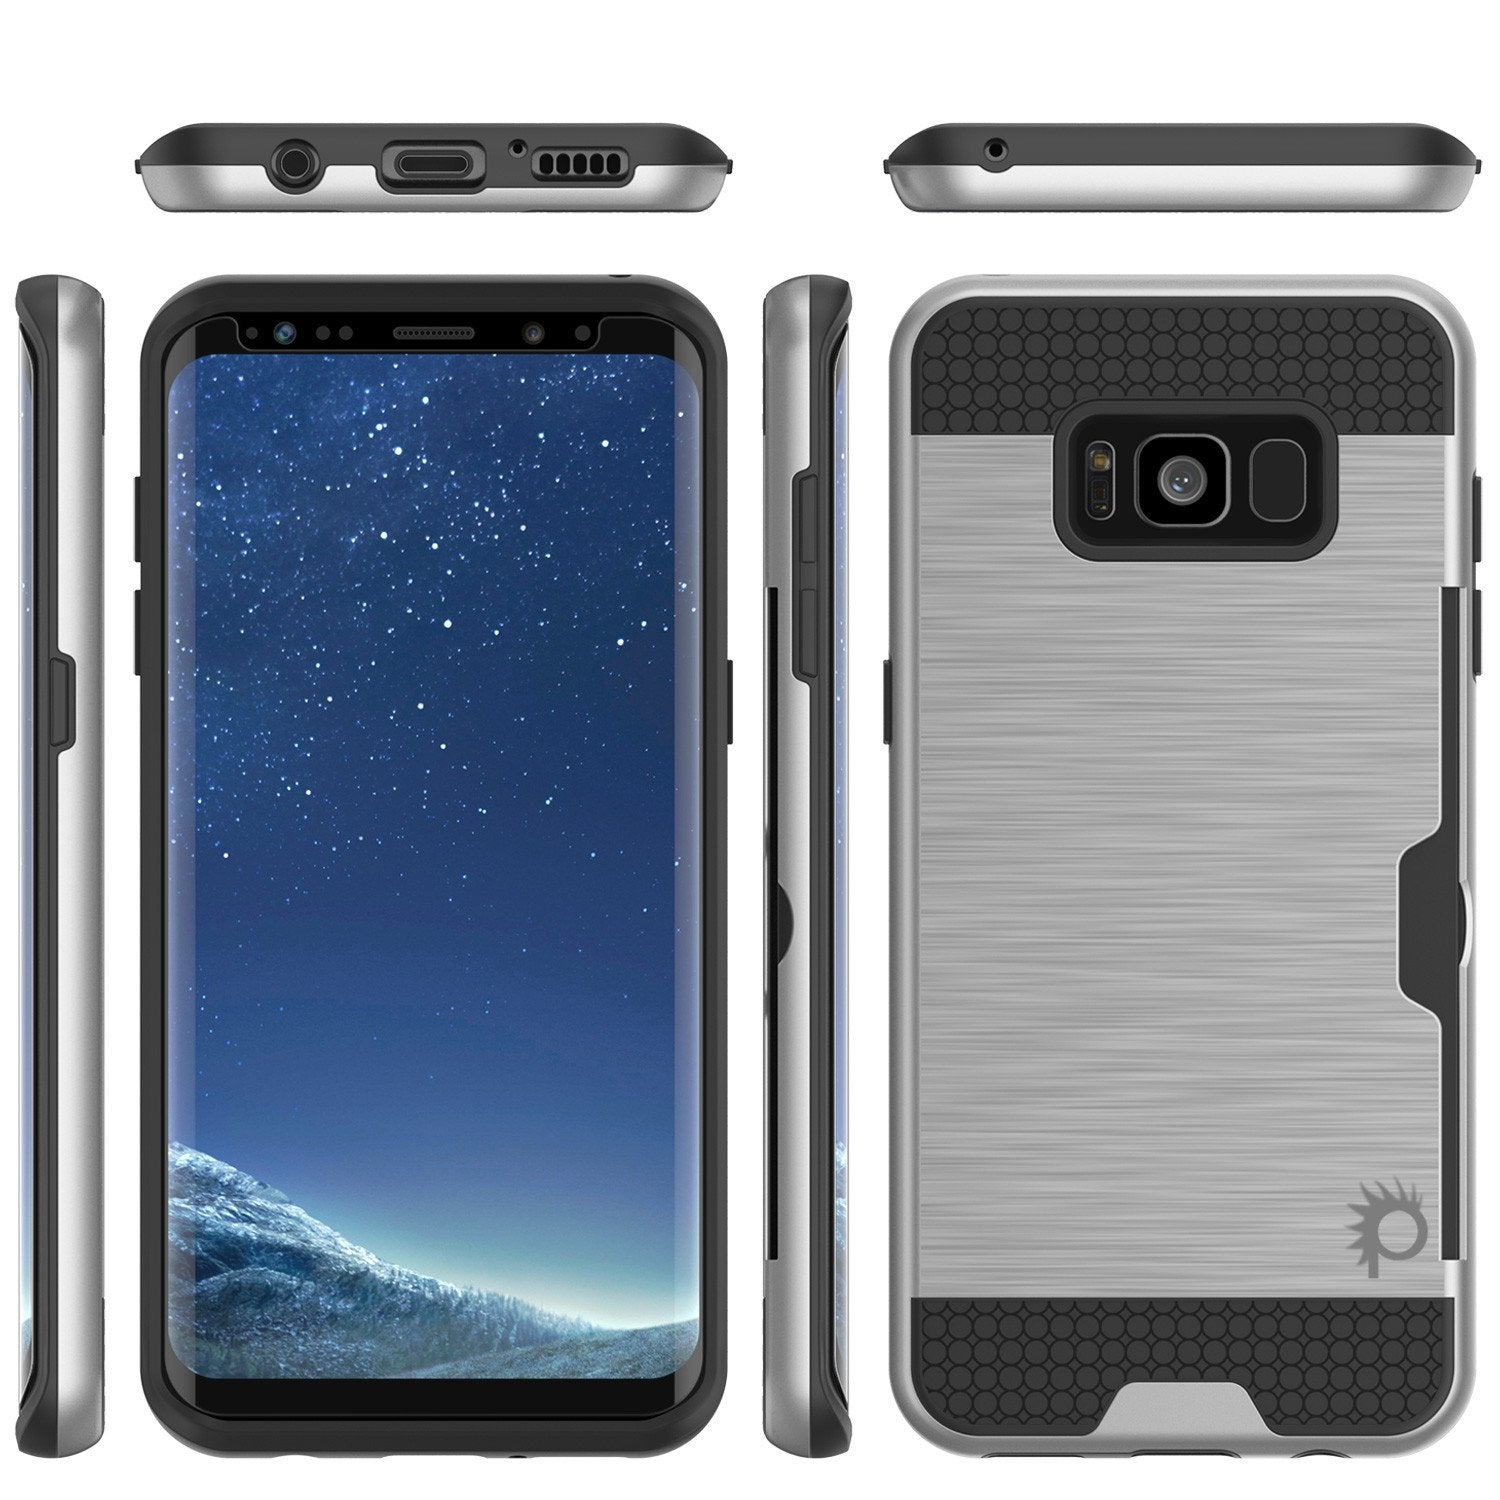 Galaxy S8 Plus Dual-Layer Anti-Shock Screen Protector Case [Silver]